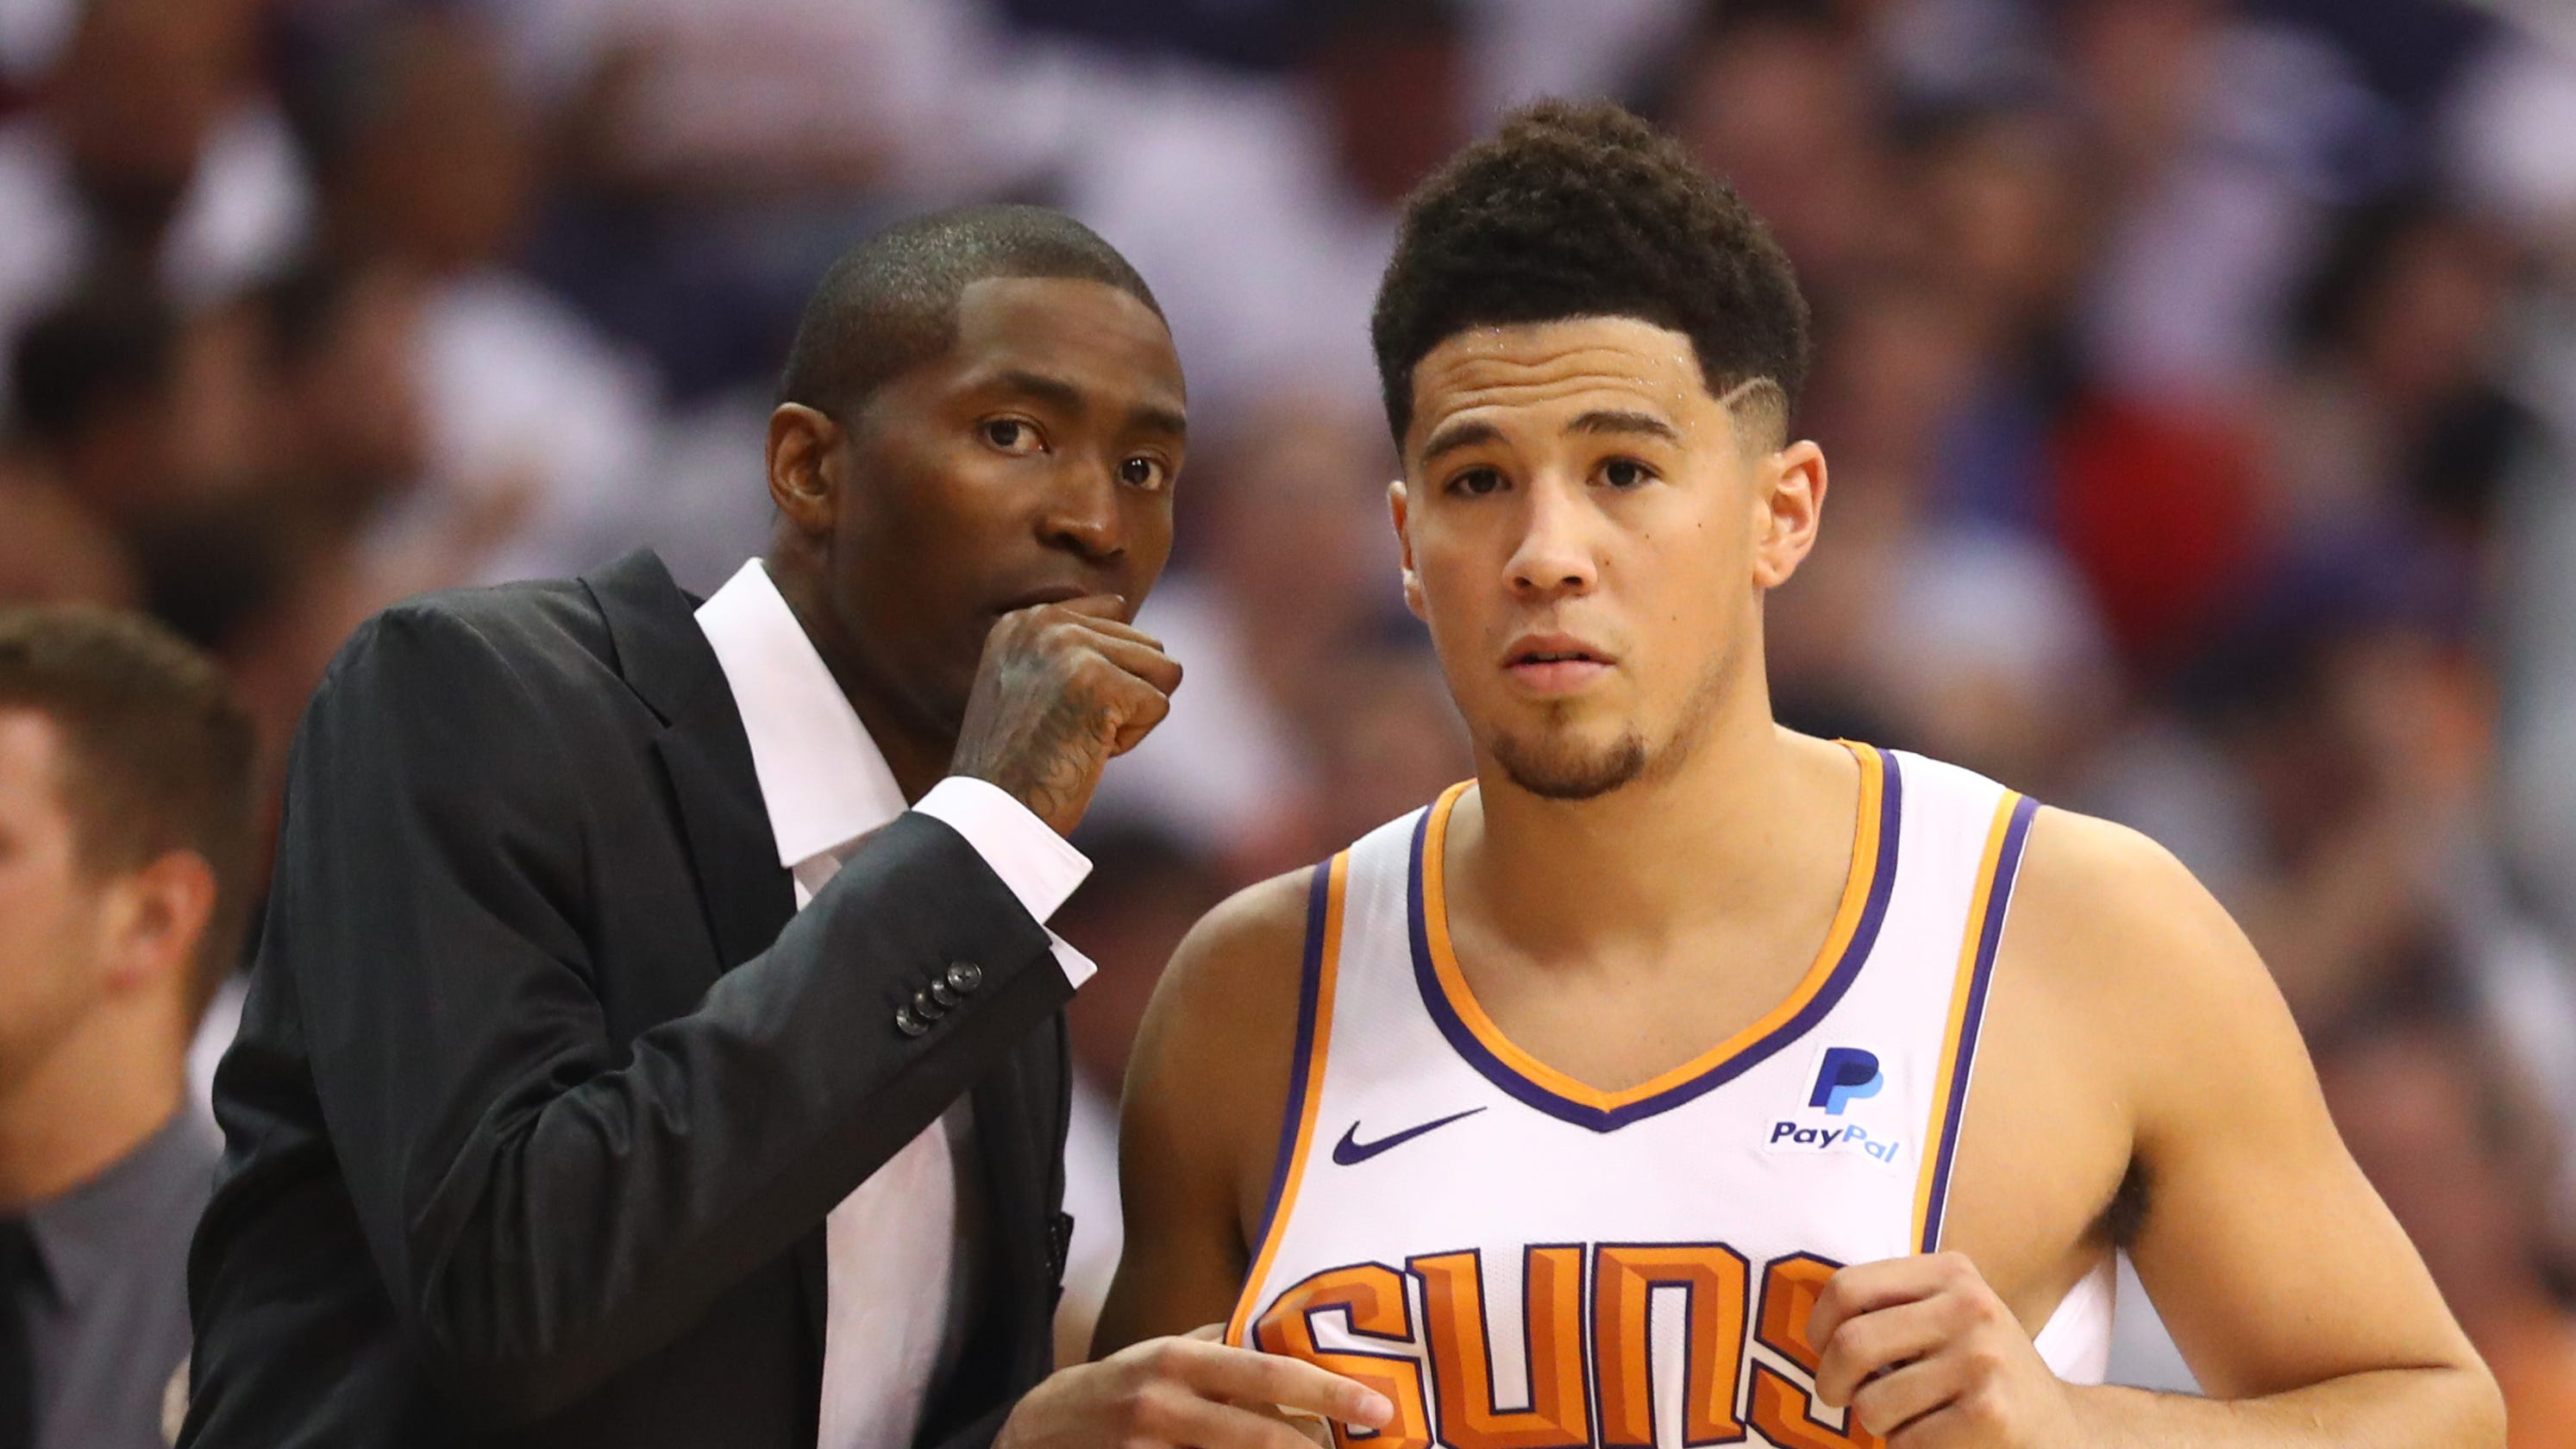 d4add5030ff7 Phoenix Suns  Jamal Crawford joins Tyson Chandler as veteran leaders